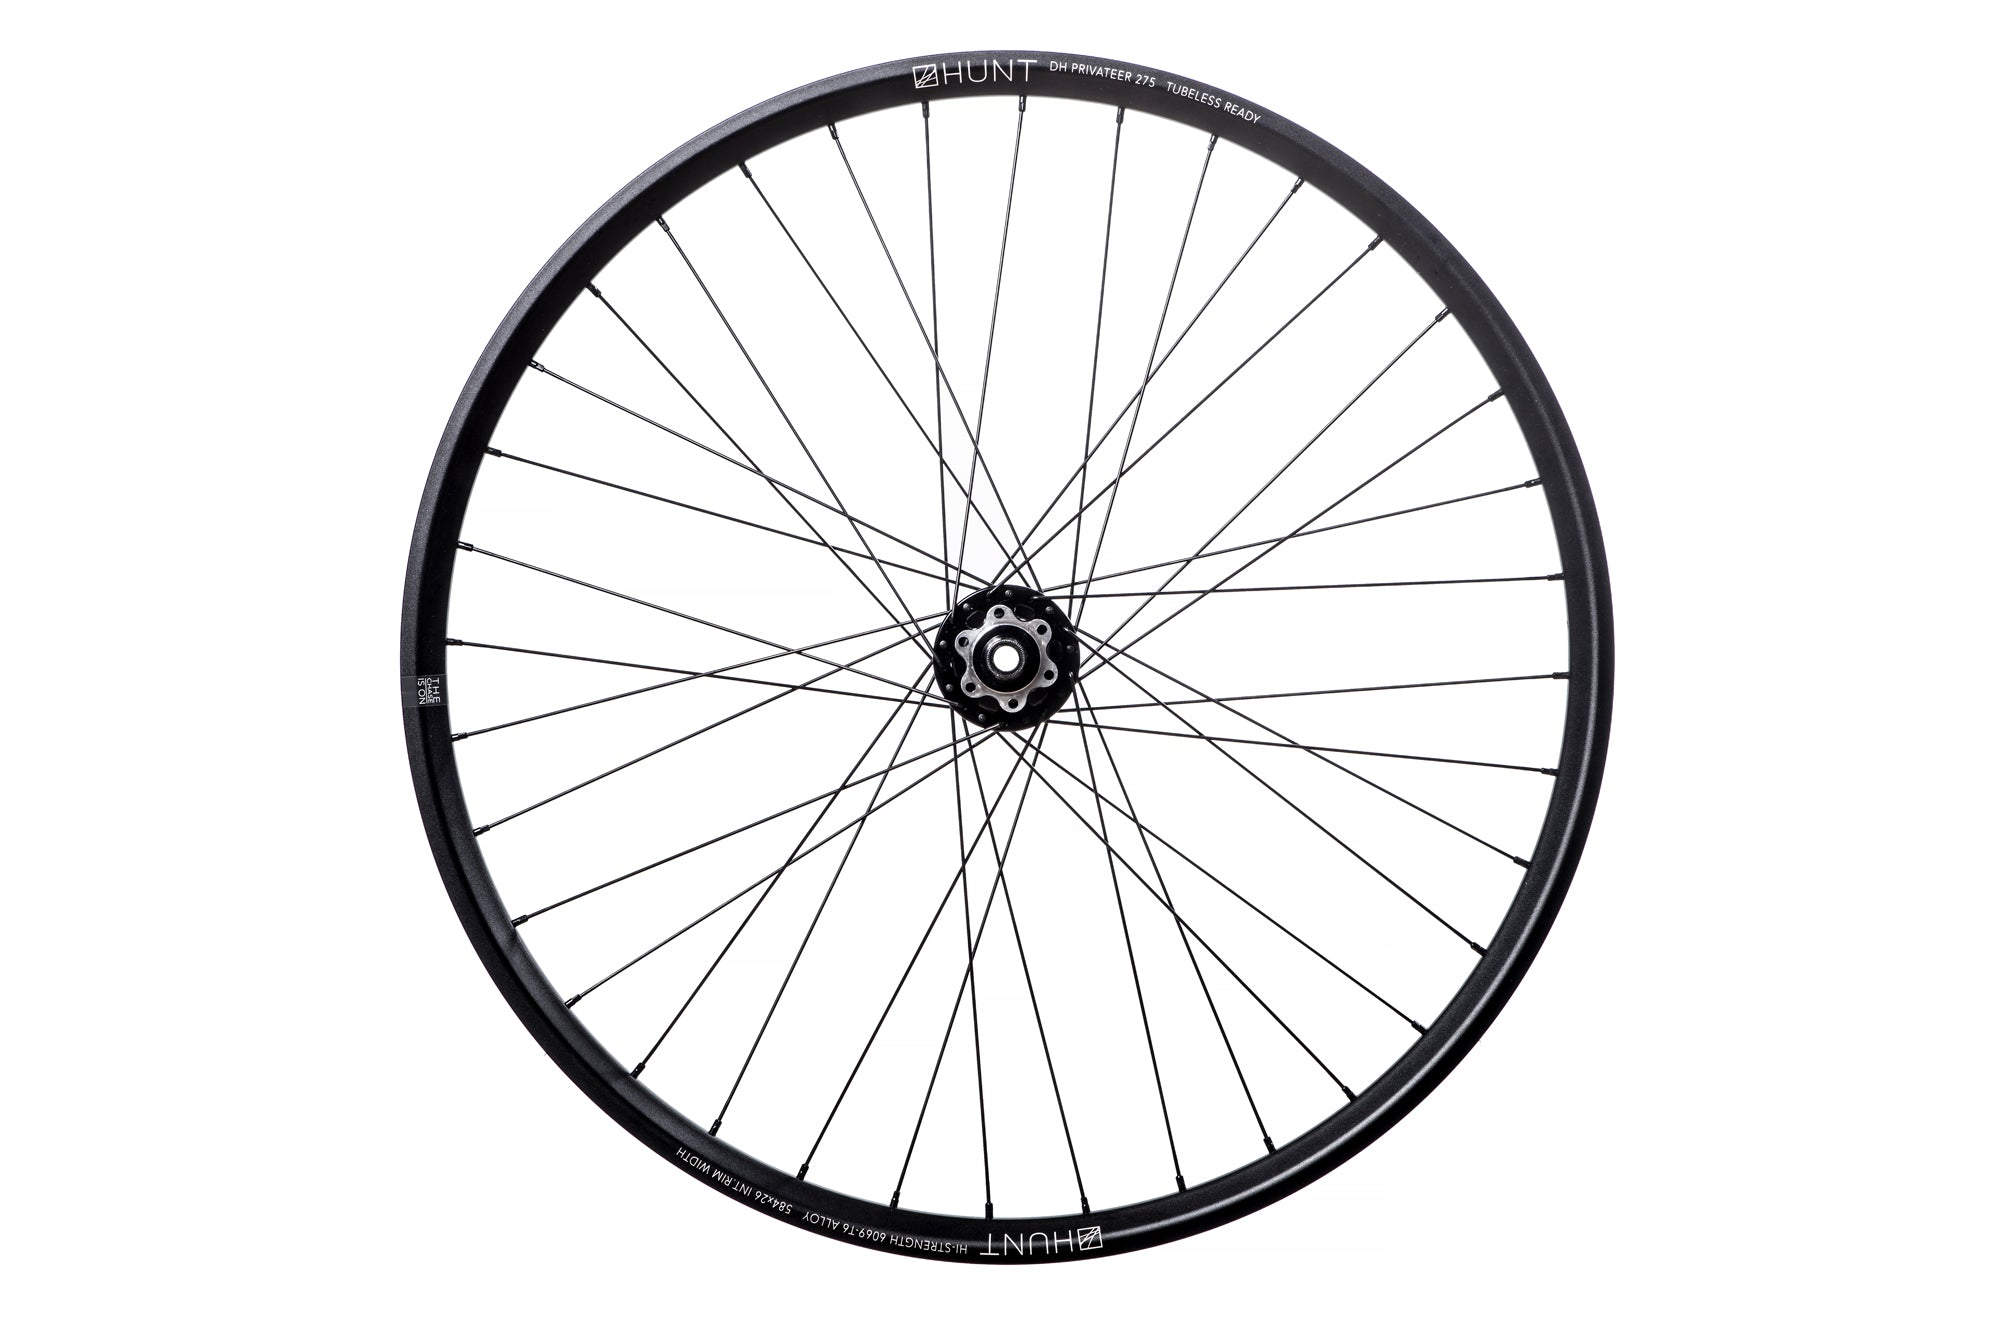 <h1>Weight</h1><i>Mountain bikers aren't concerned about weight, right? Nope! Whether you're doing a back-country epic or pedalling between stages, we have paid attention to weight to suit the type of riding they will be subjected too. For example, using the highest specification Pillar triple butted spokes with PSR (Pillar Spoke Re-enforcement) has allowed us to not only create a stronger wheel with a higher spoke count, but one which does not add a weight penalty.</i>